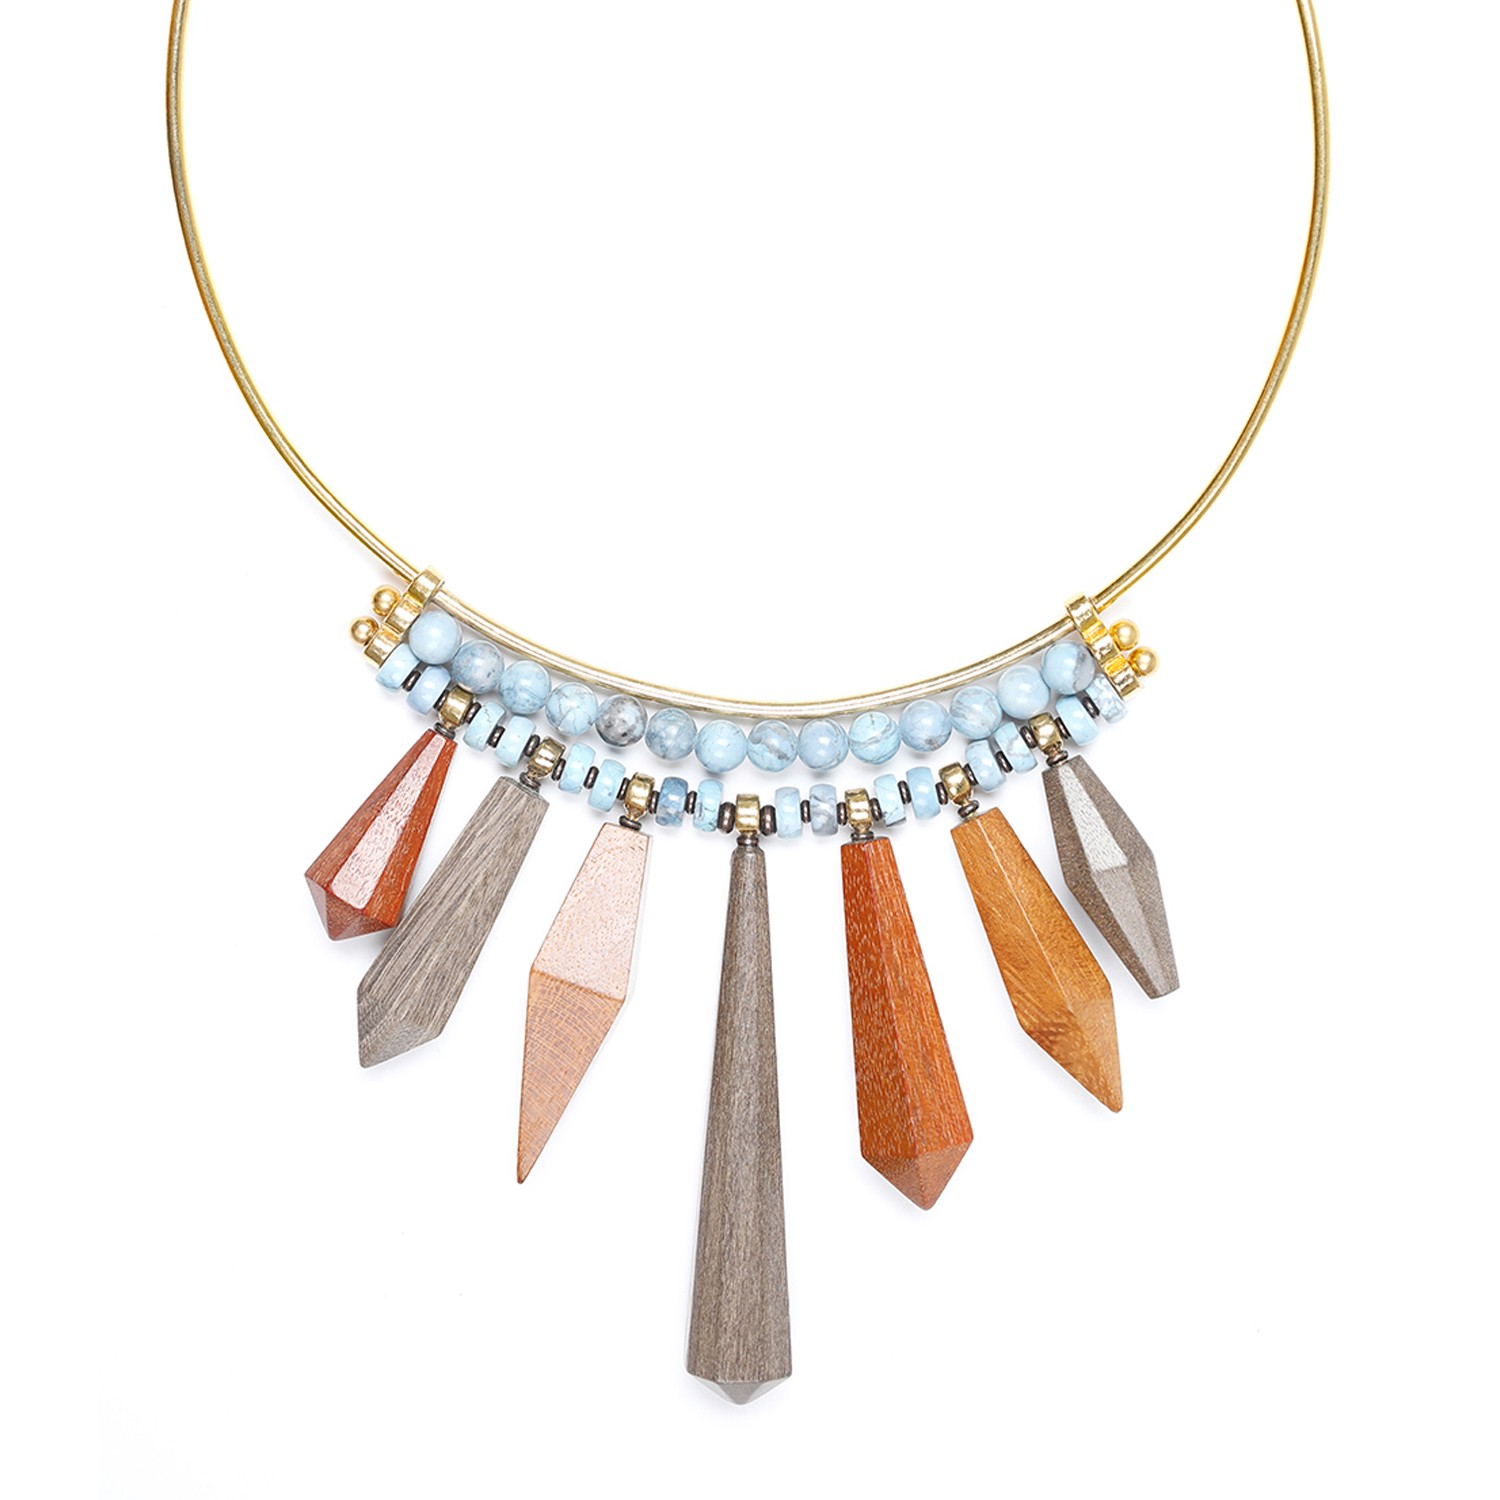 WOOD DIAMONDS LE collier